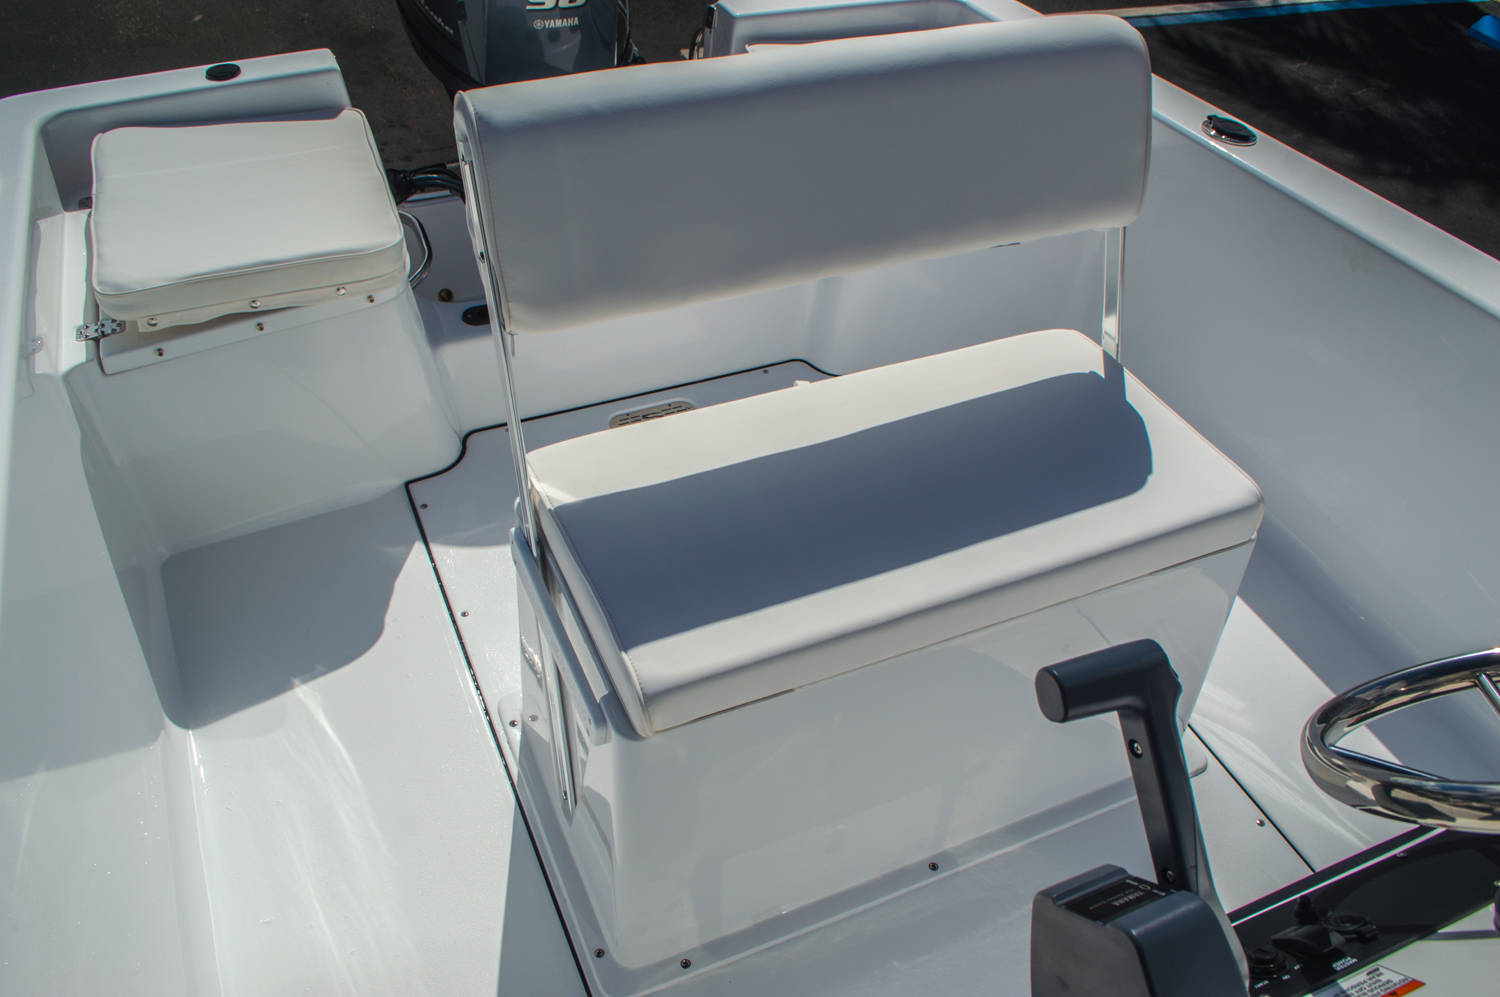 Thumbnail 29 for New 2016 Sportsman 19 Island Reef boat for sale in West Palm Beach, FL